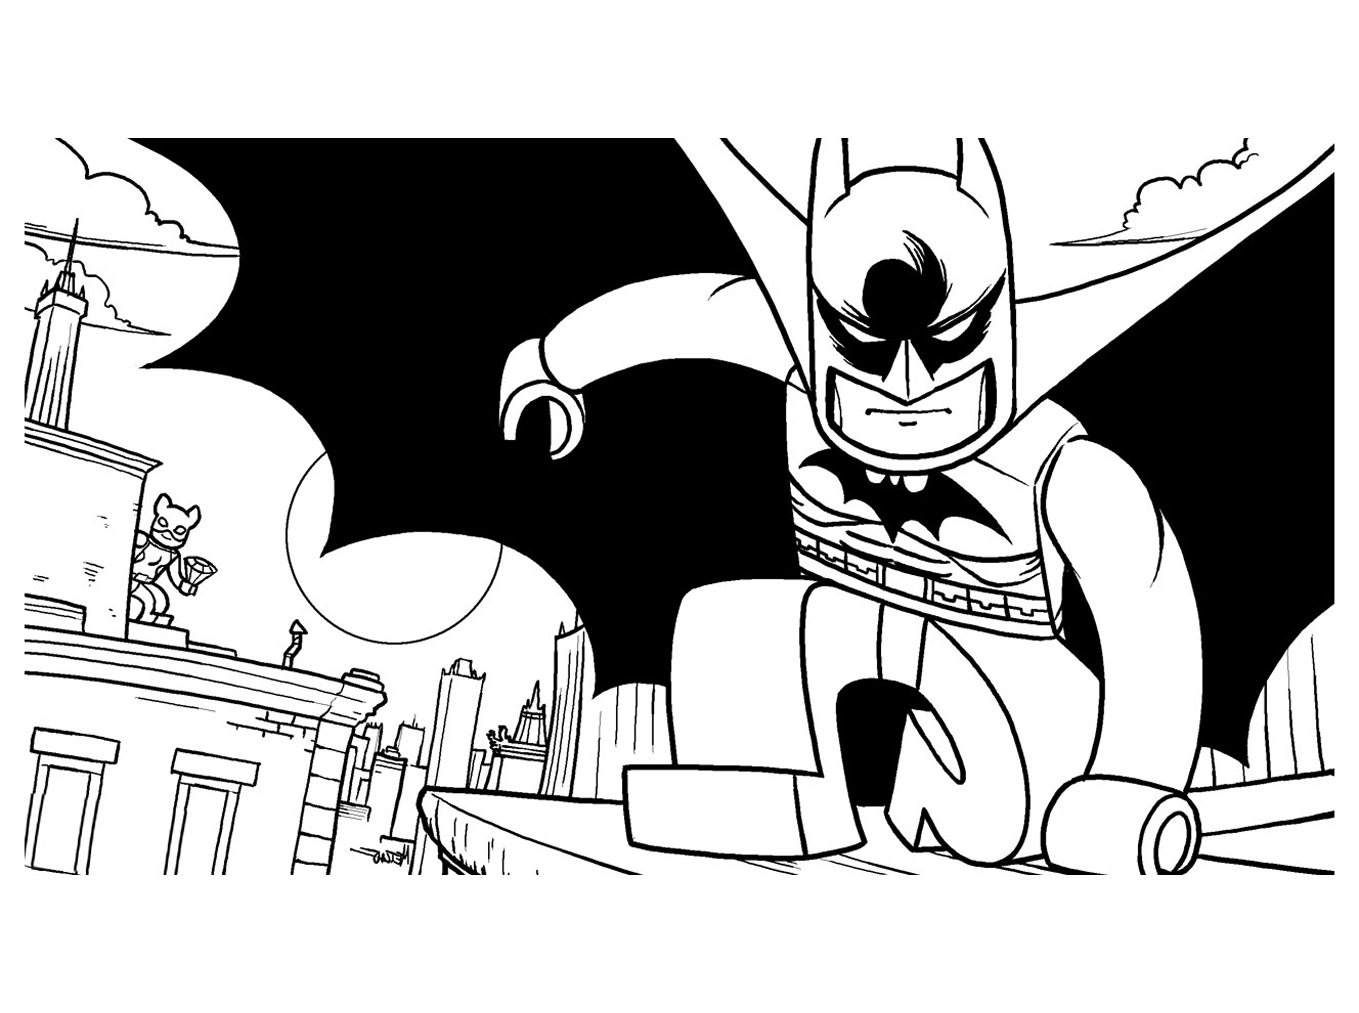 Lego the Big Adventure coloring page to download